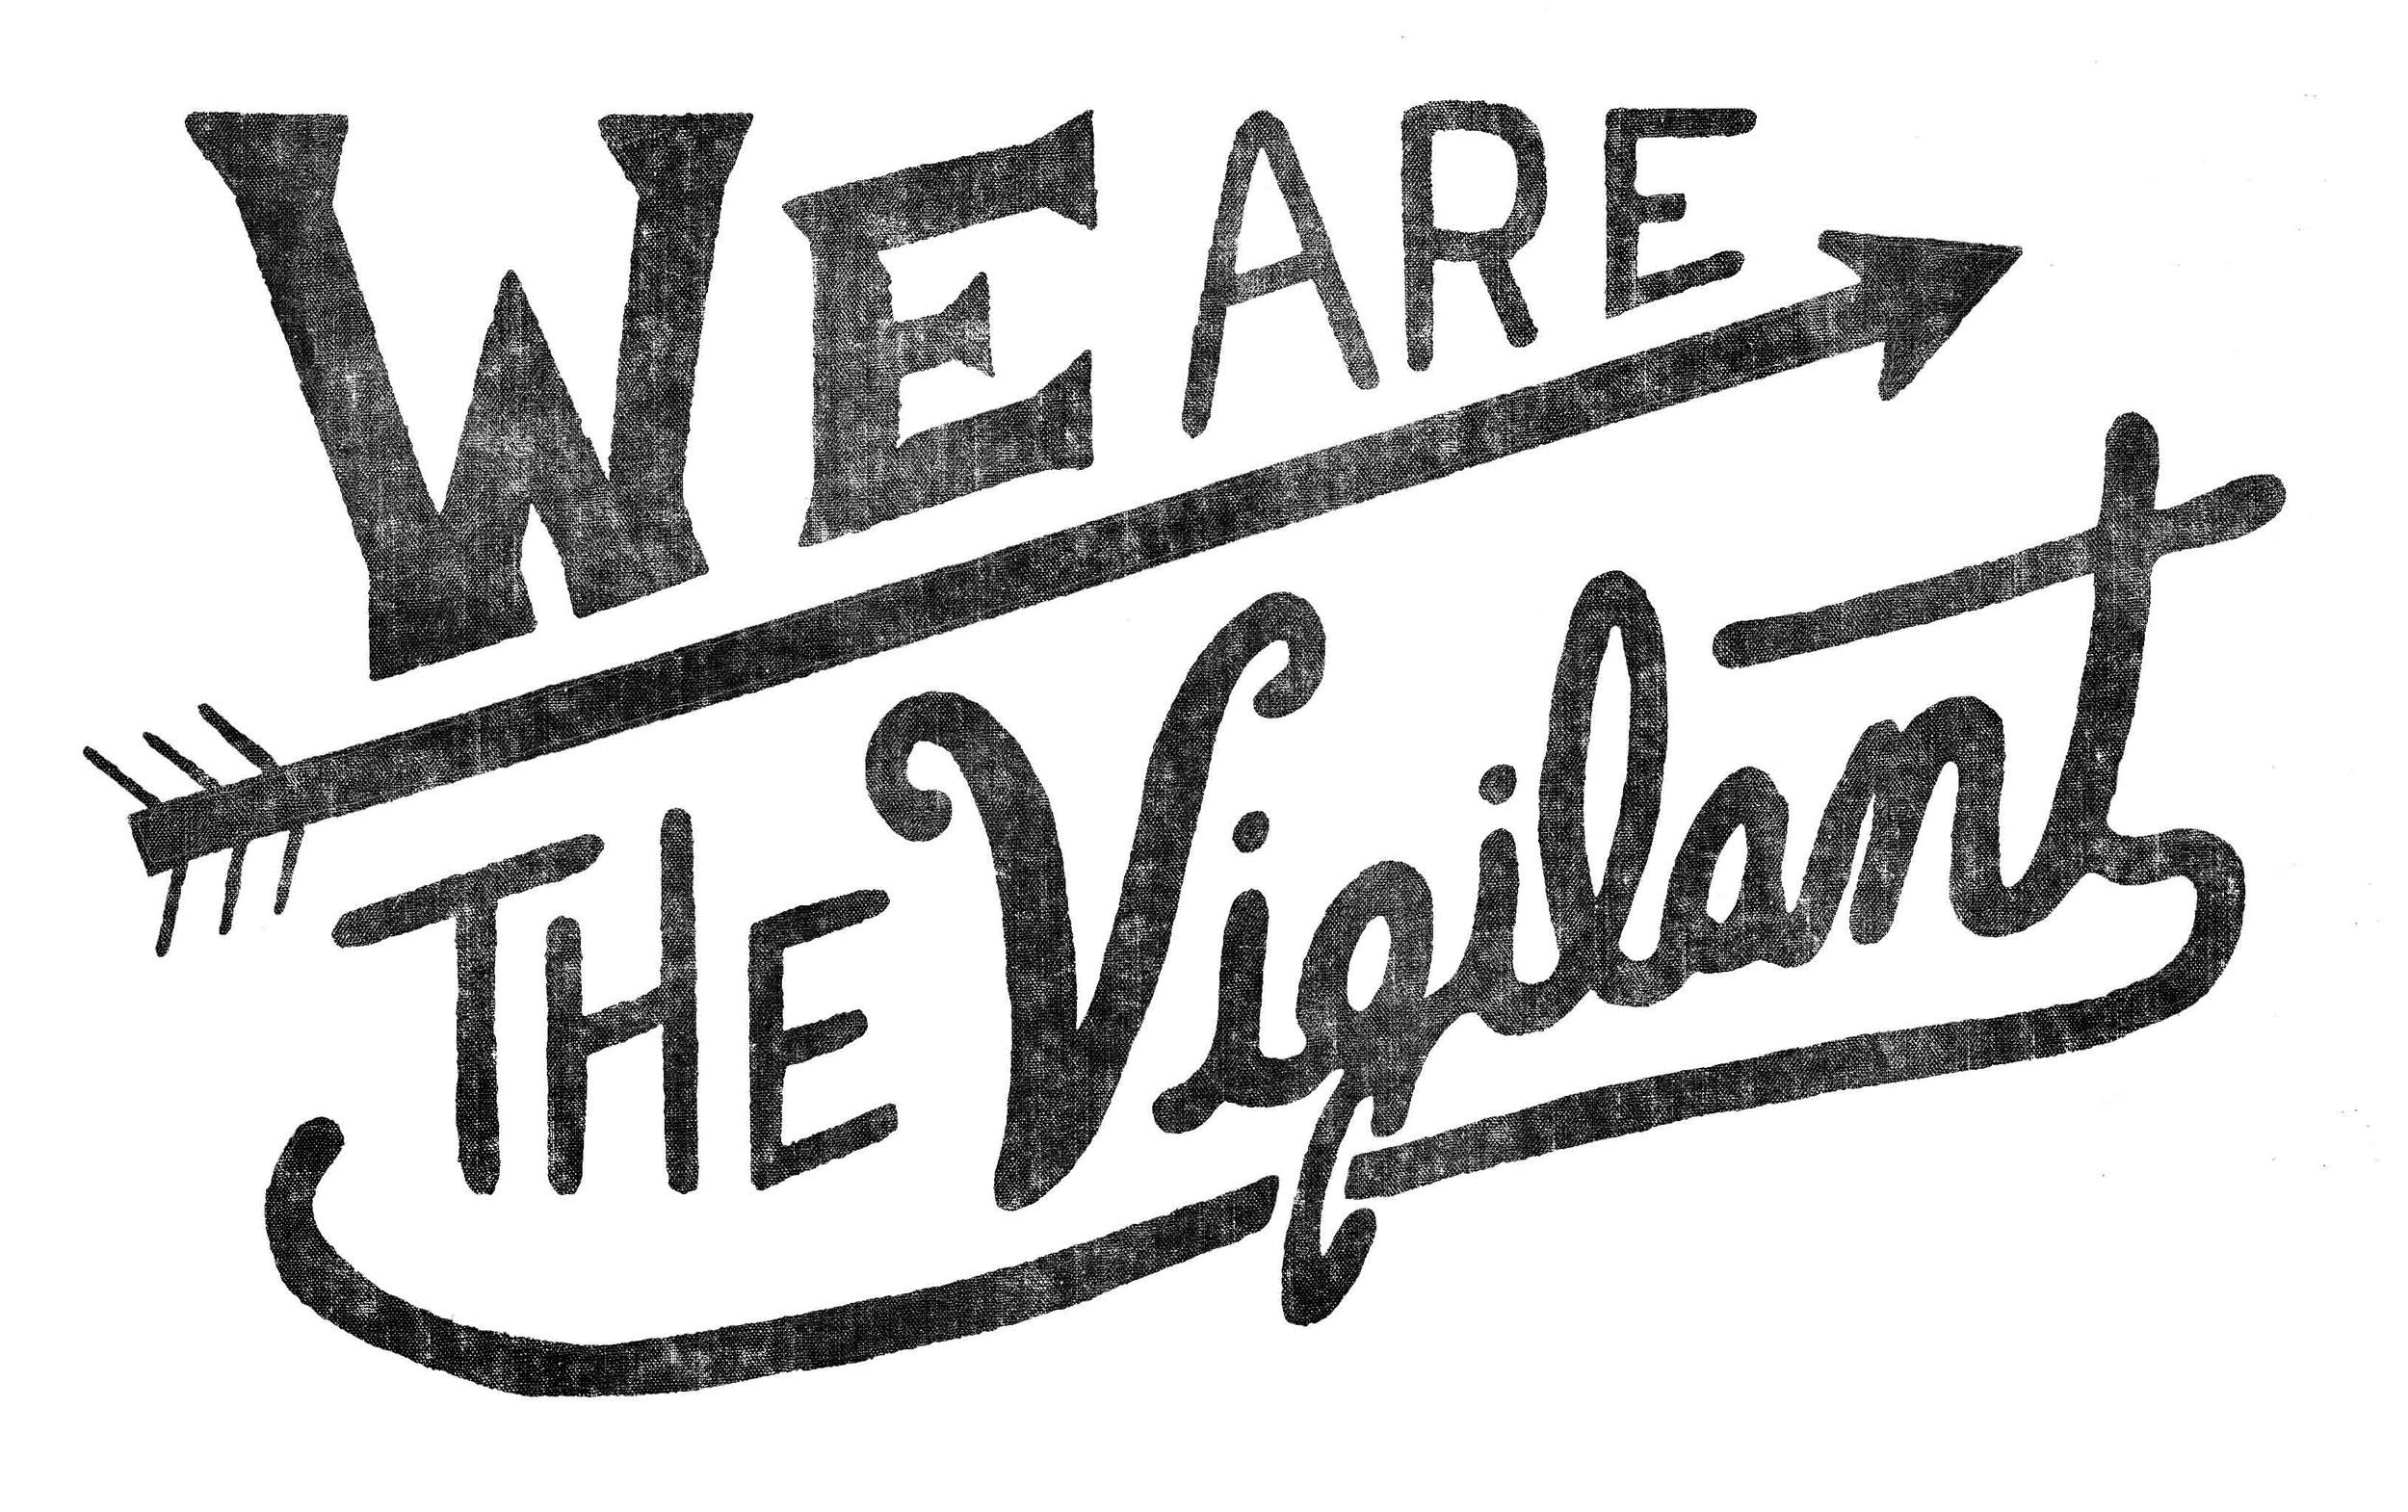 We are the Vigilant - cropped.jpg